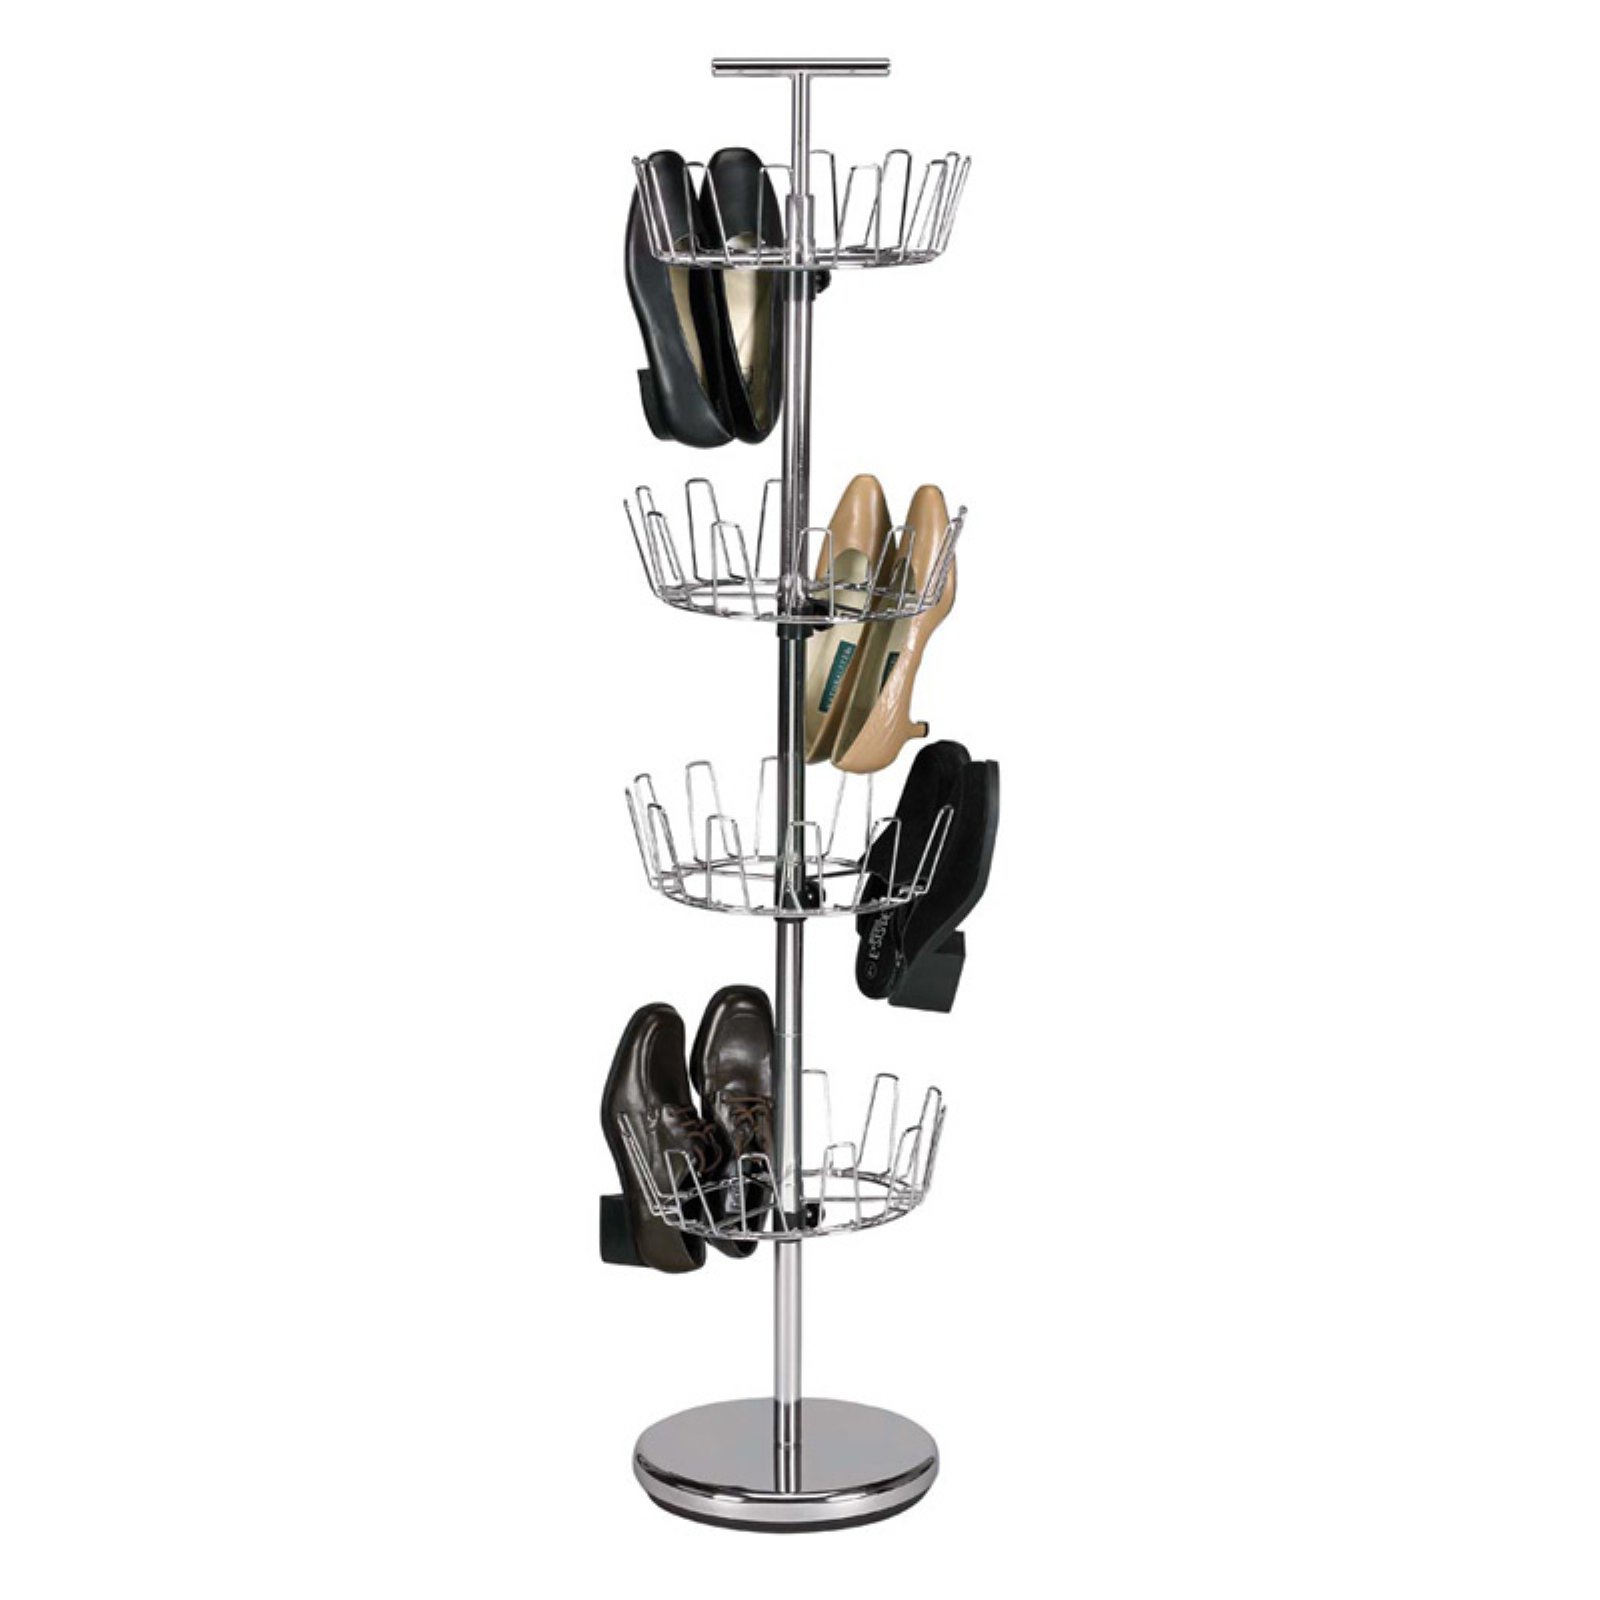 Household Essentials 4-Tier Revolving Shoe Tree, Silver